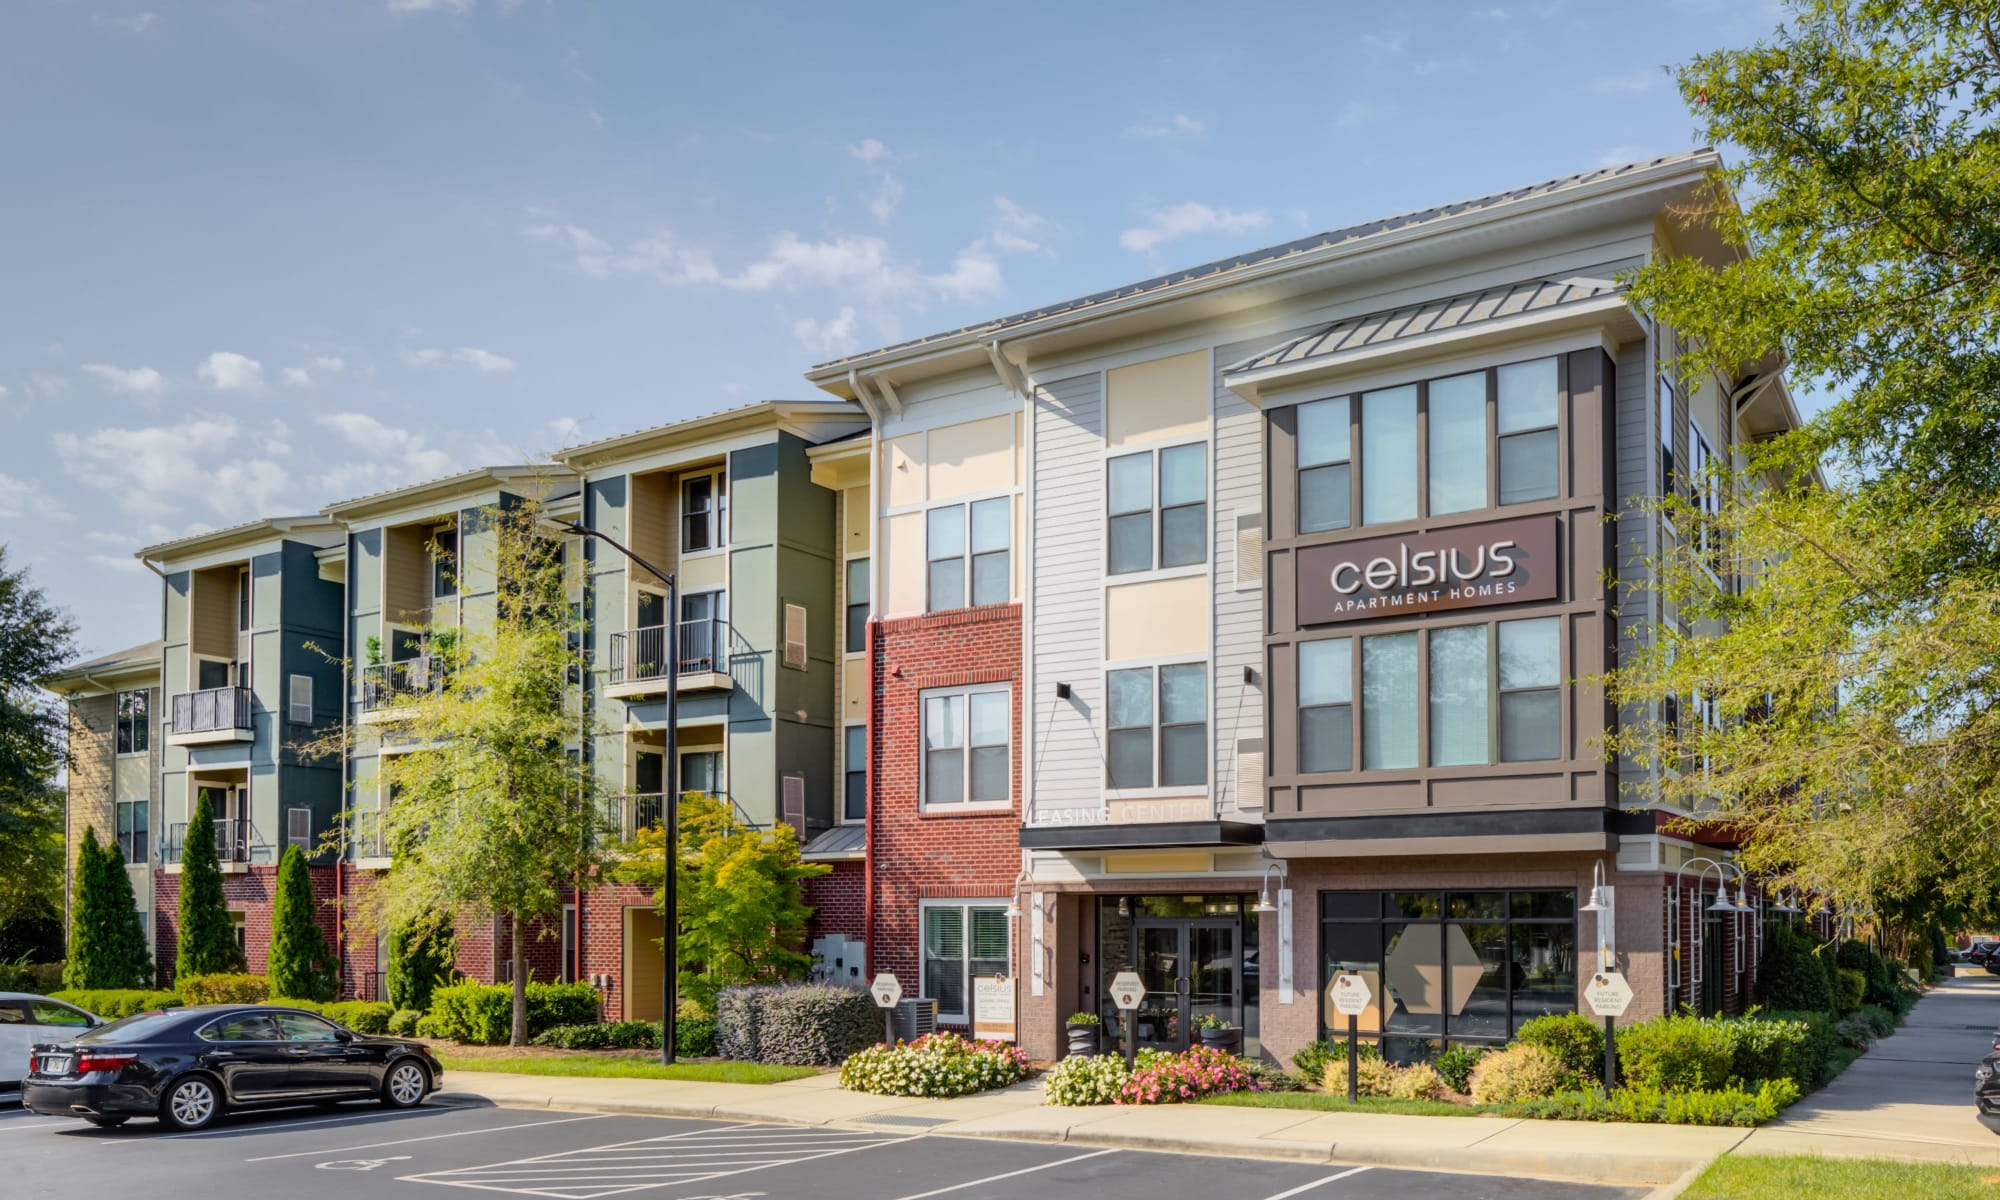 Photos of Celsius Apartment Homes in Charlotte, North Carolina